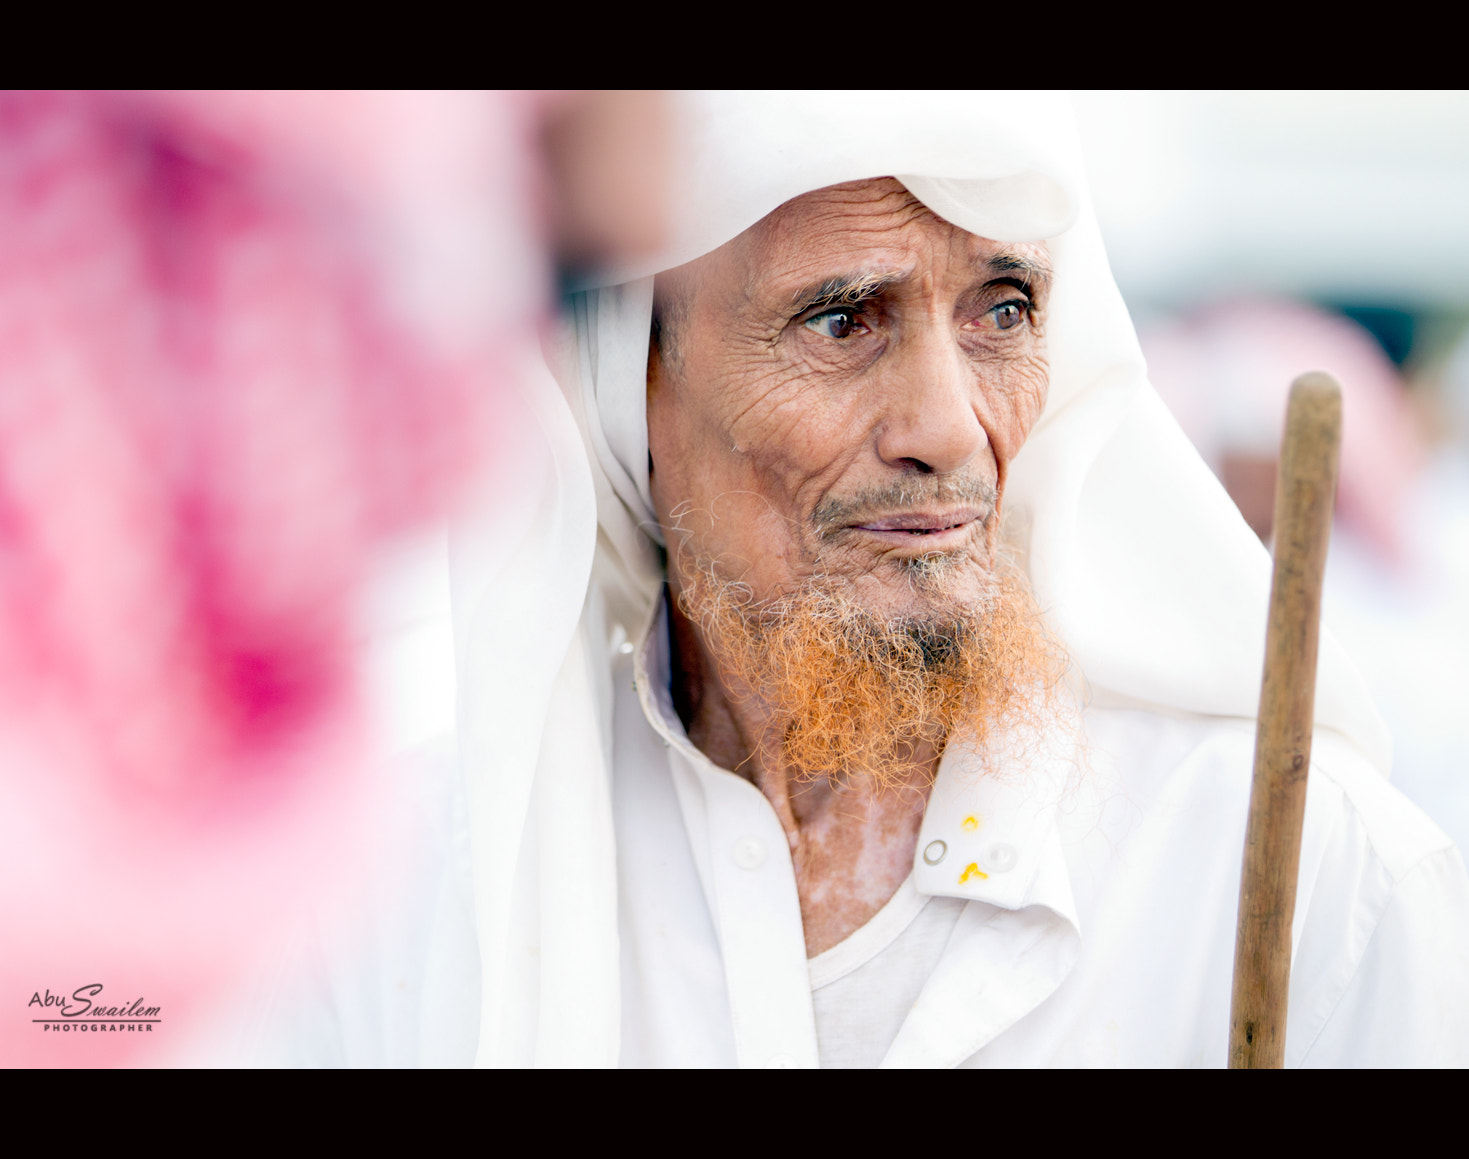 Photograph OLD POOR MAN by Abu  Swailem on 500px